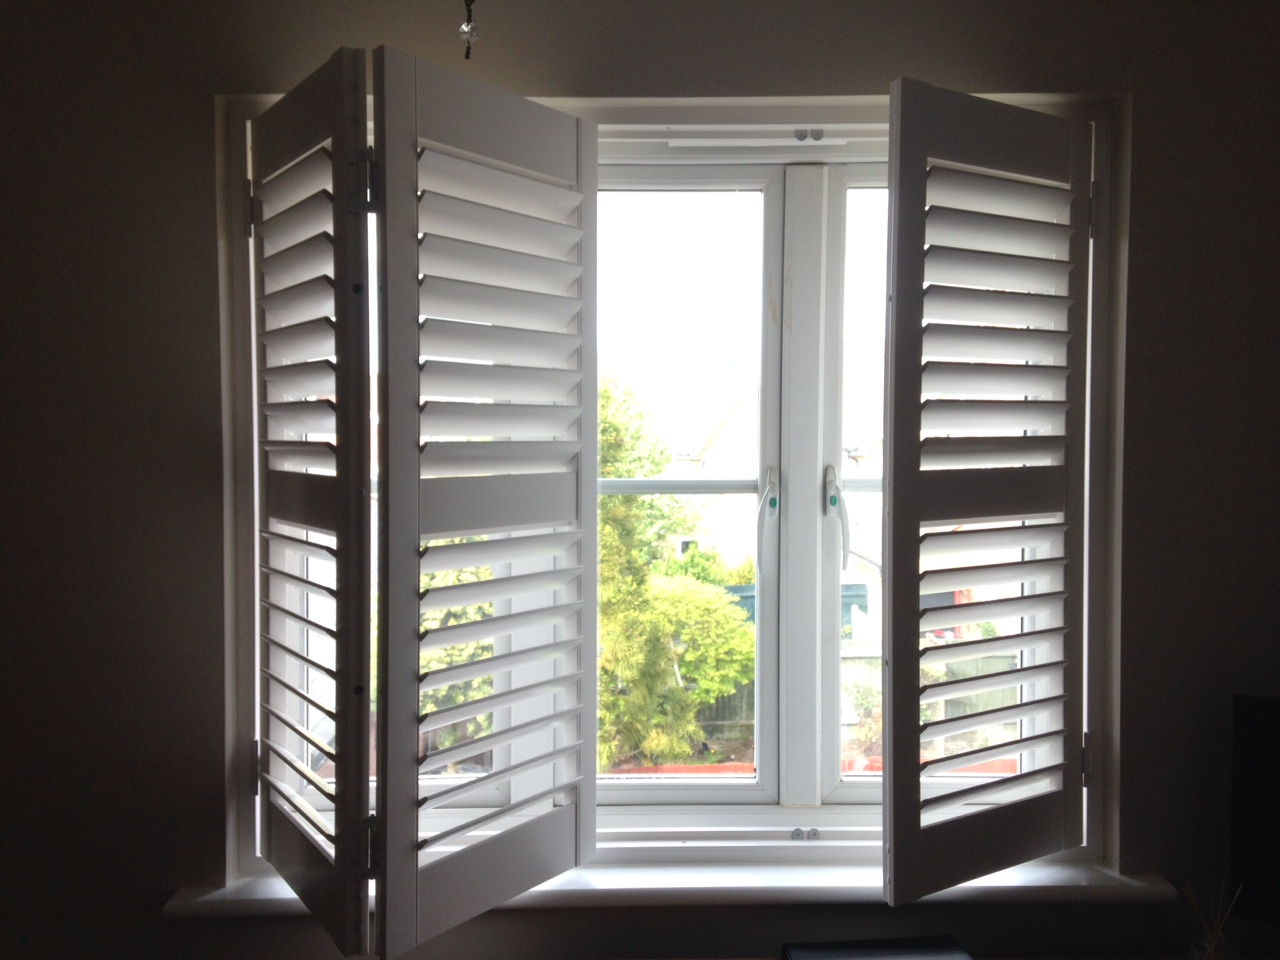 Bass wood shutters | Authentic timber plantation shutters